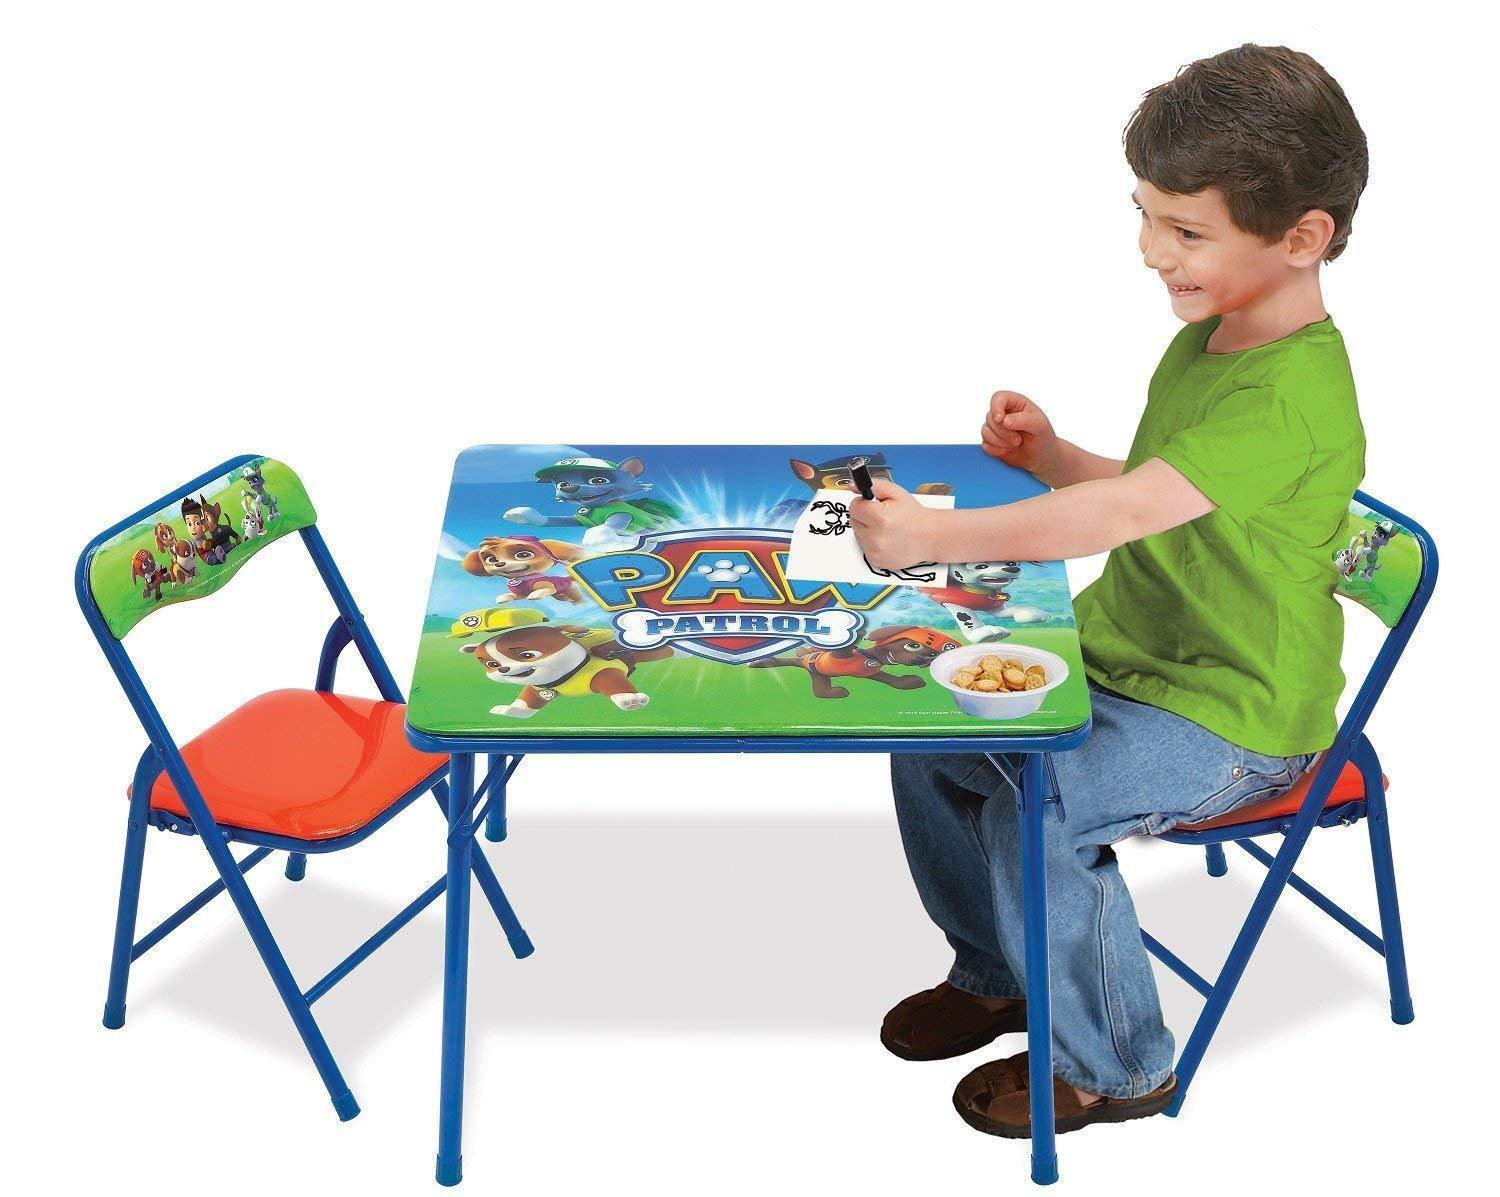 Paw Patrol Table Set Two Chairs Arts and Crafts Indoor Outdo